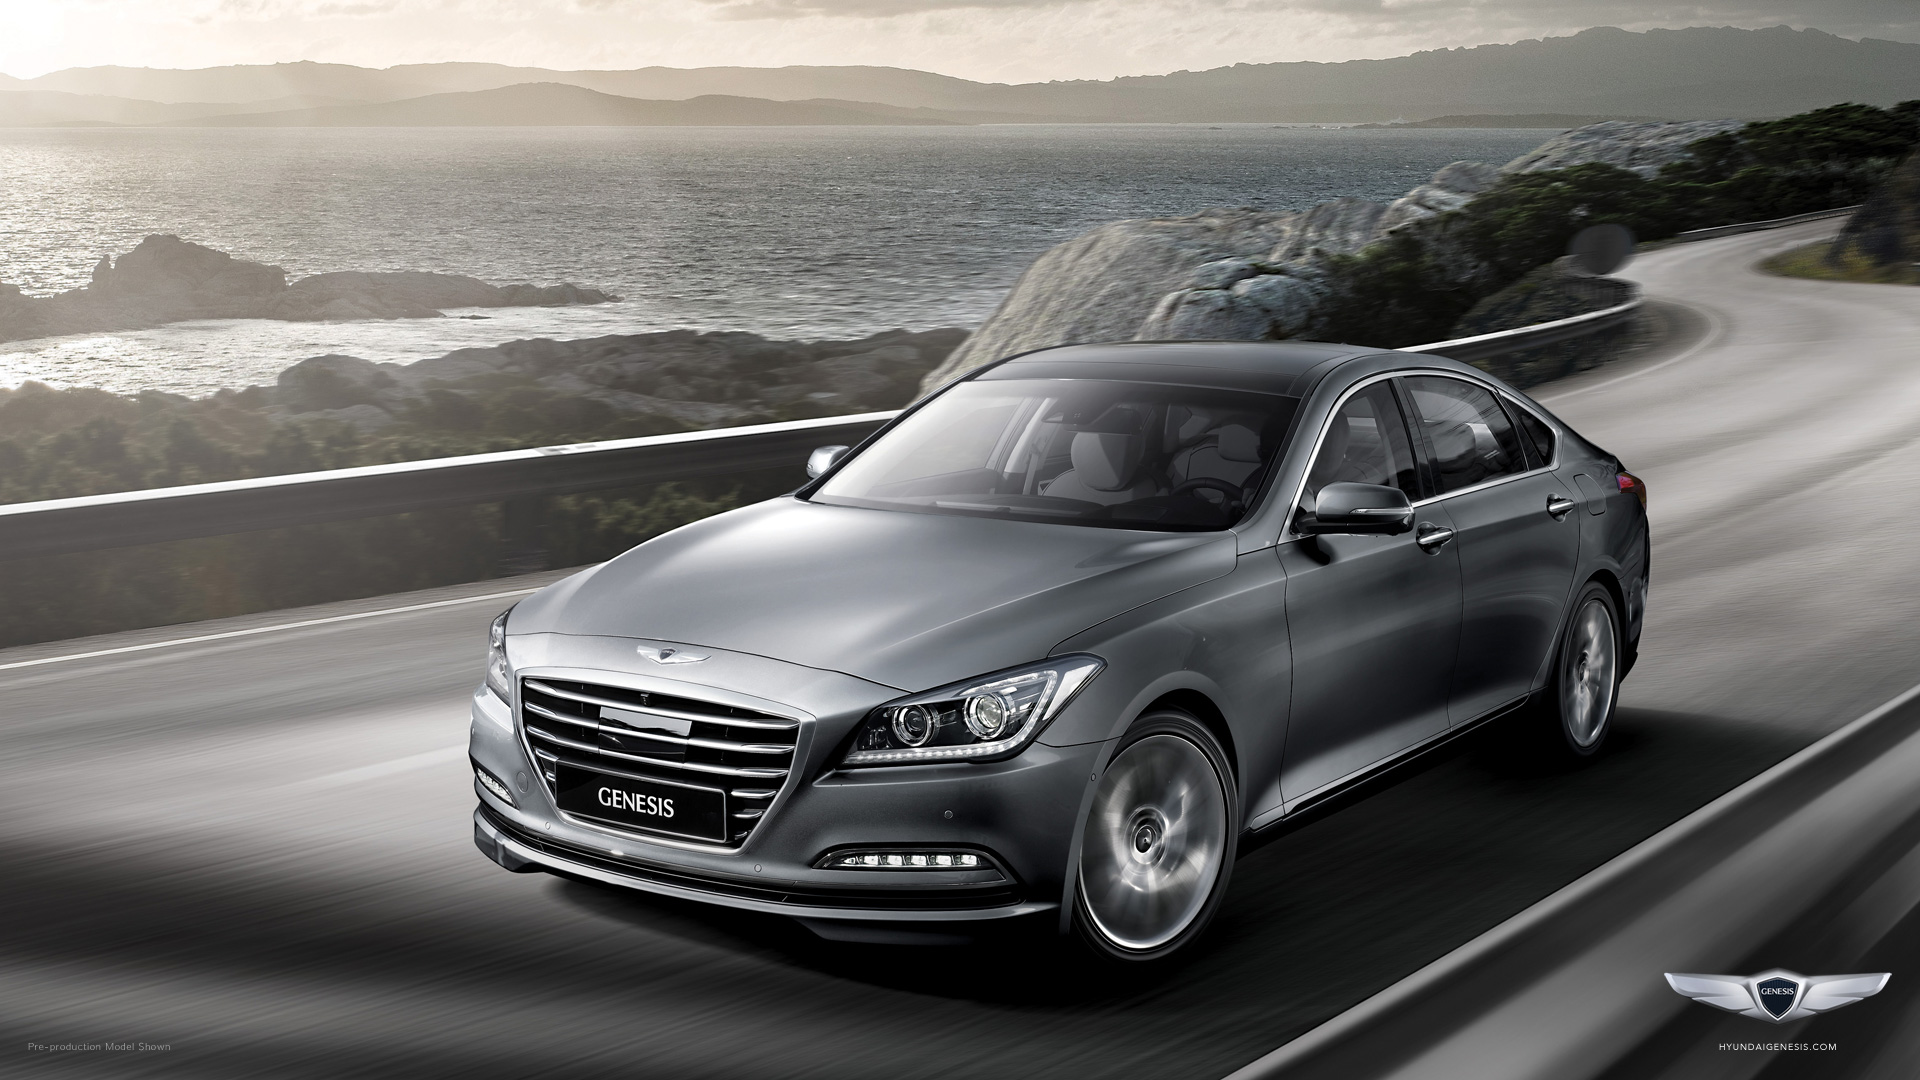 Hyundai-Genesis-Gallery-wallpaper-22